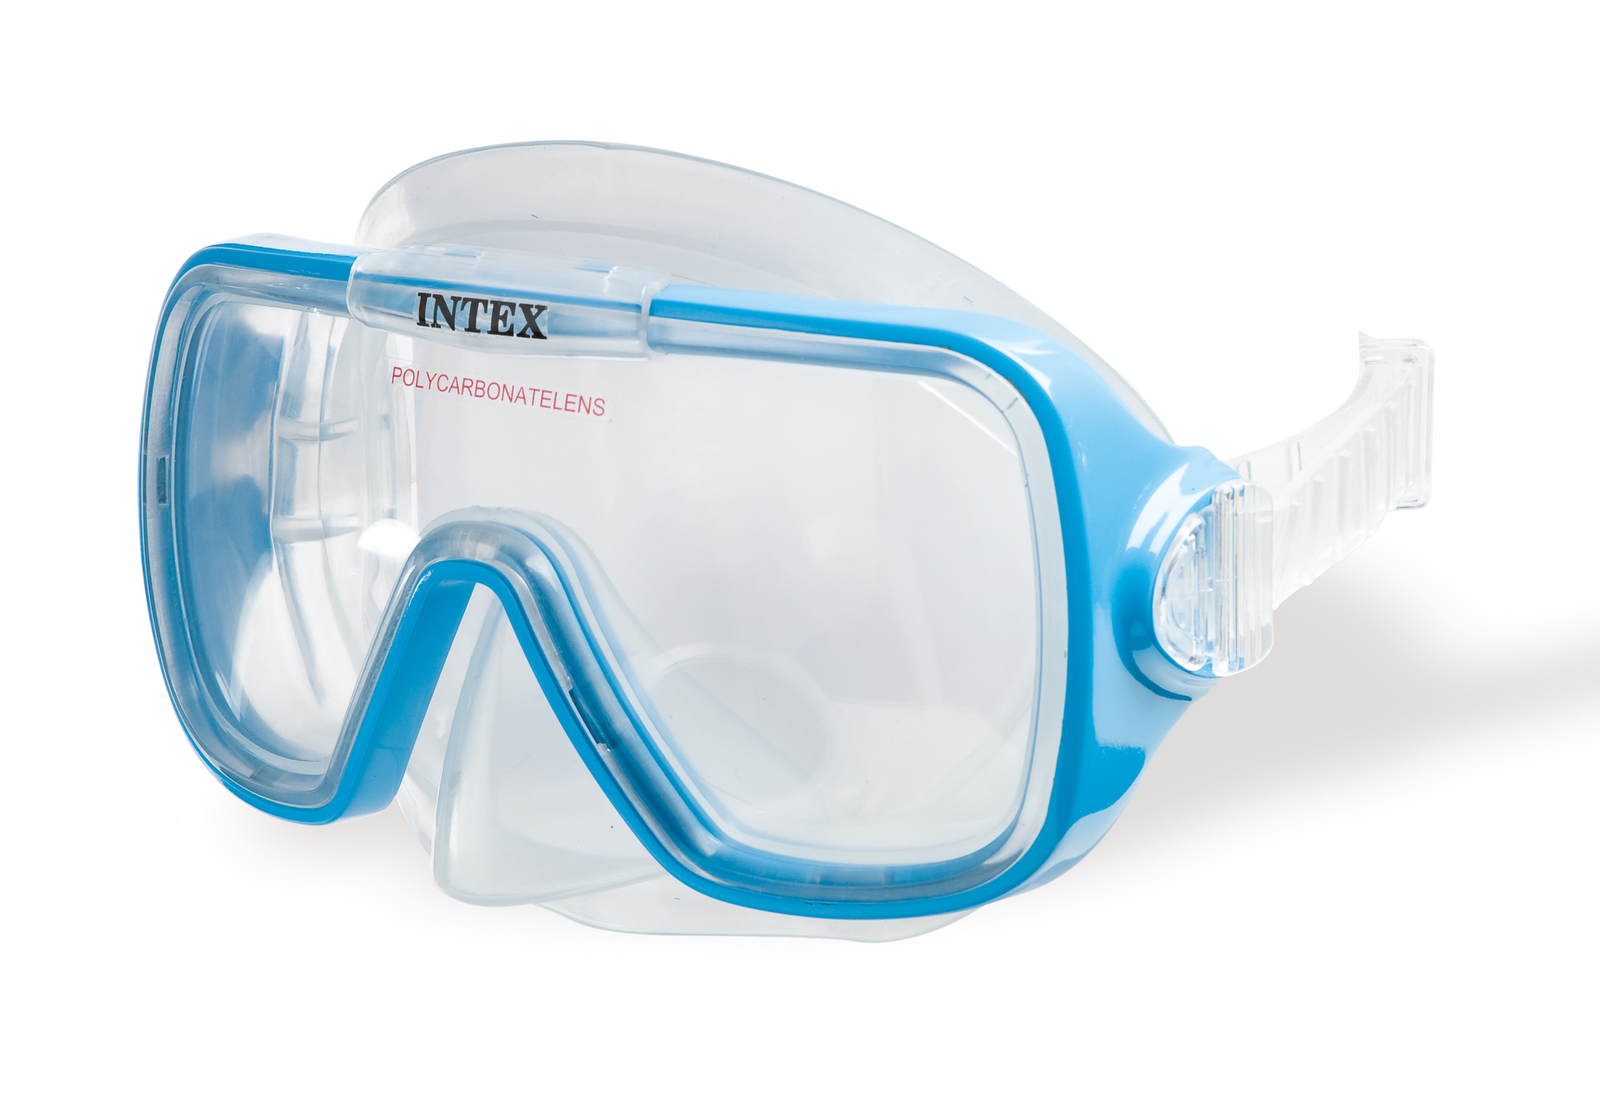 Intex: Wave Rider - Swim Mask (Blue) image